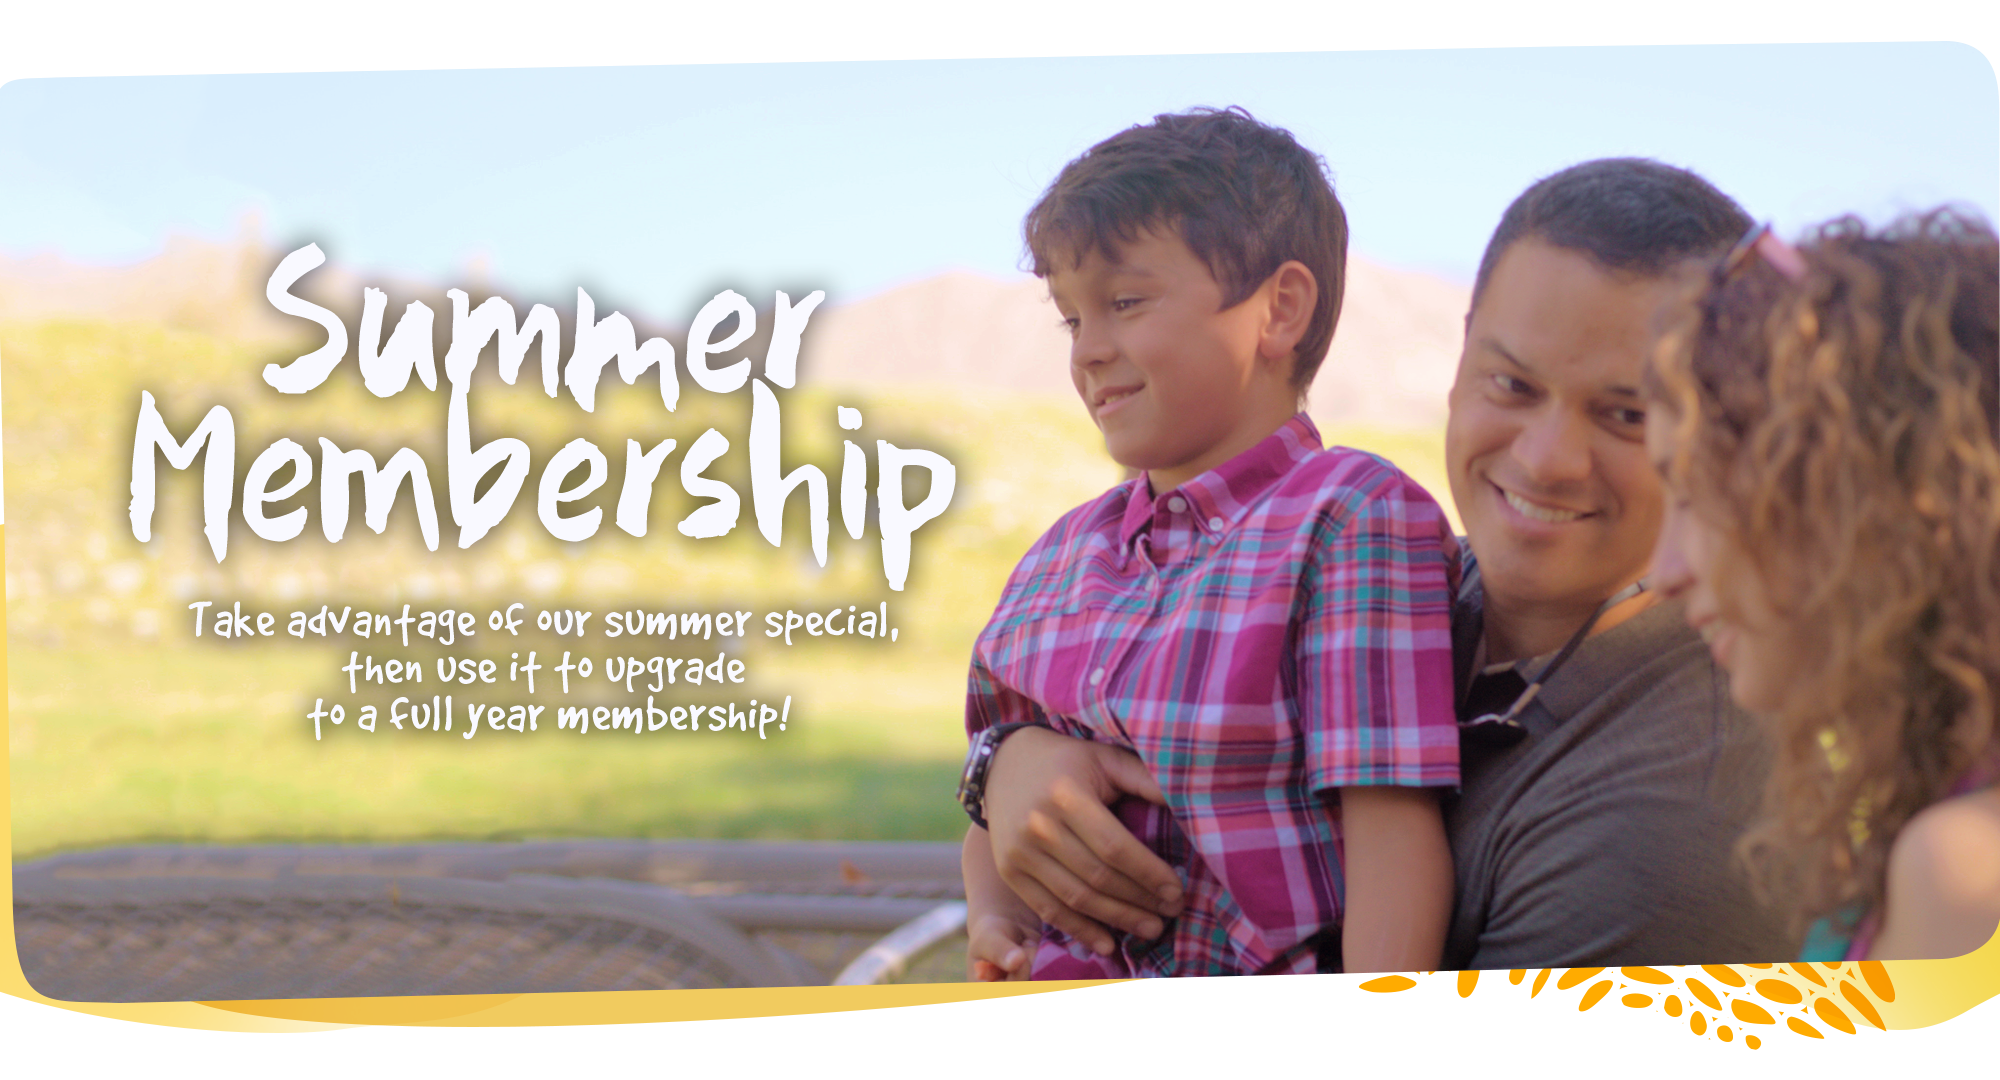 Take advantage of our summer special, then use it to upgrade to a full year membership. Click for more information.